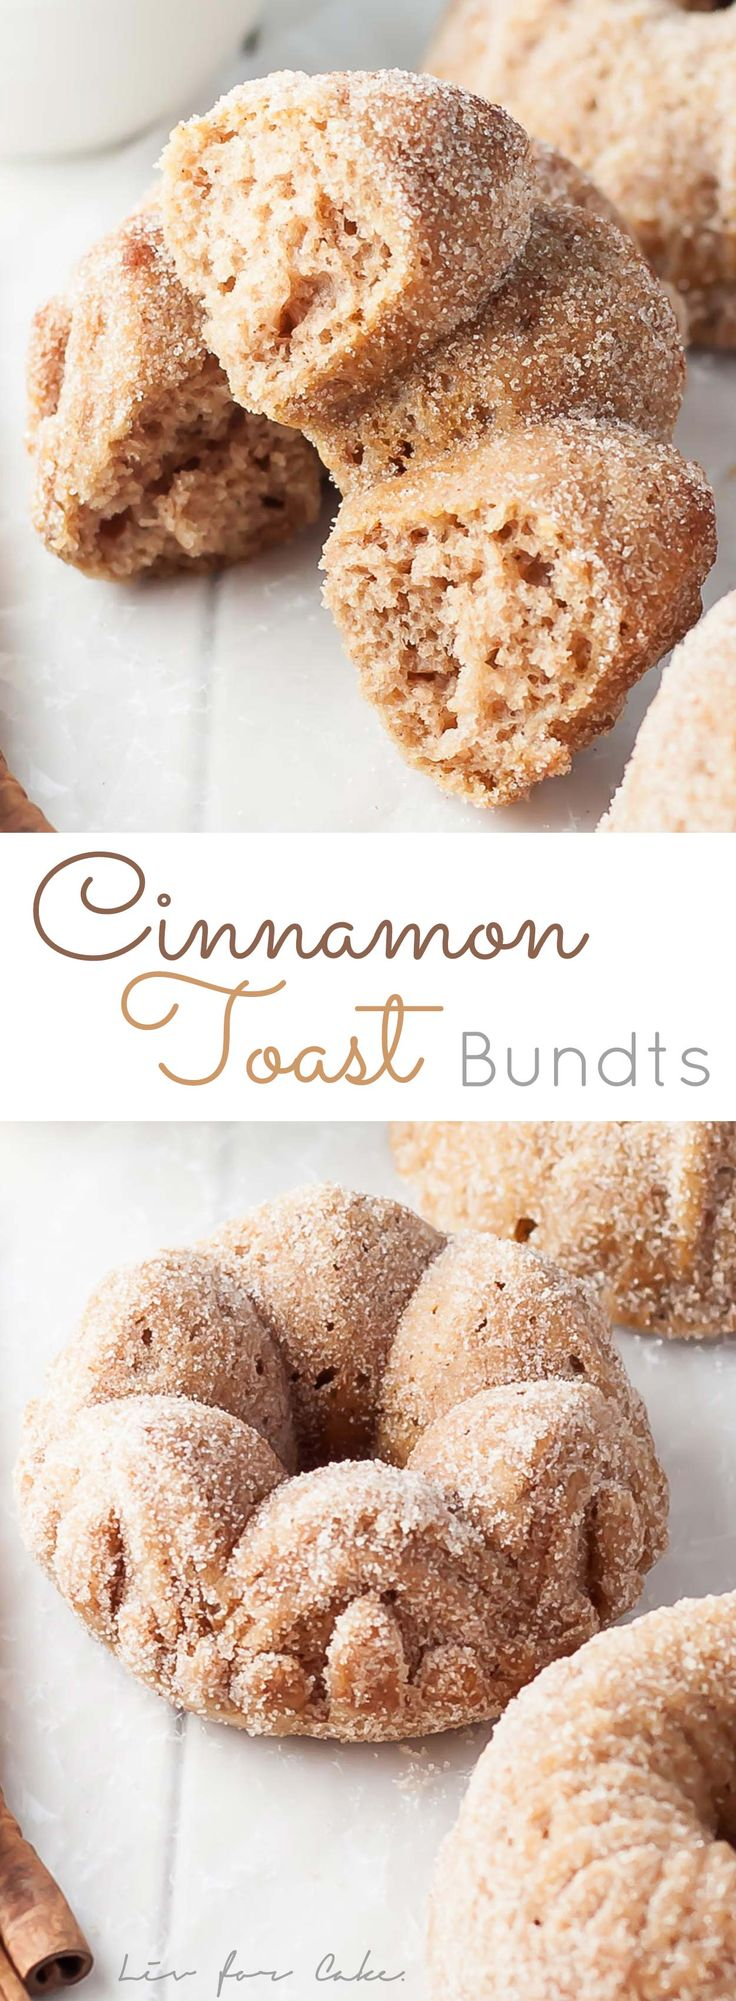 The perfect combination of cake and donut in these delicious Cinnamon Toast Bundts! | livforcake.com